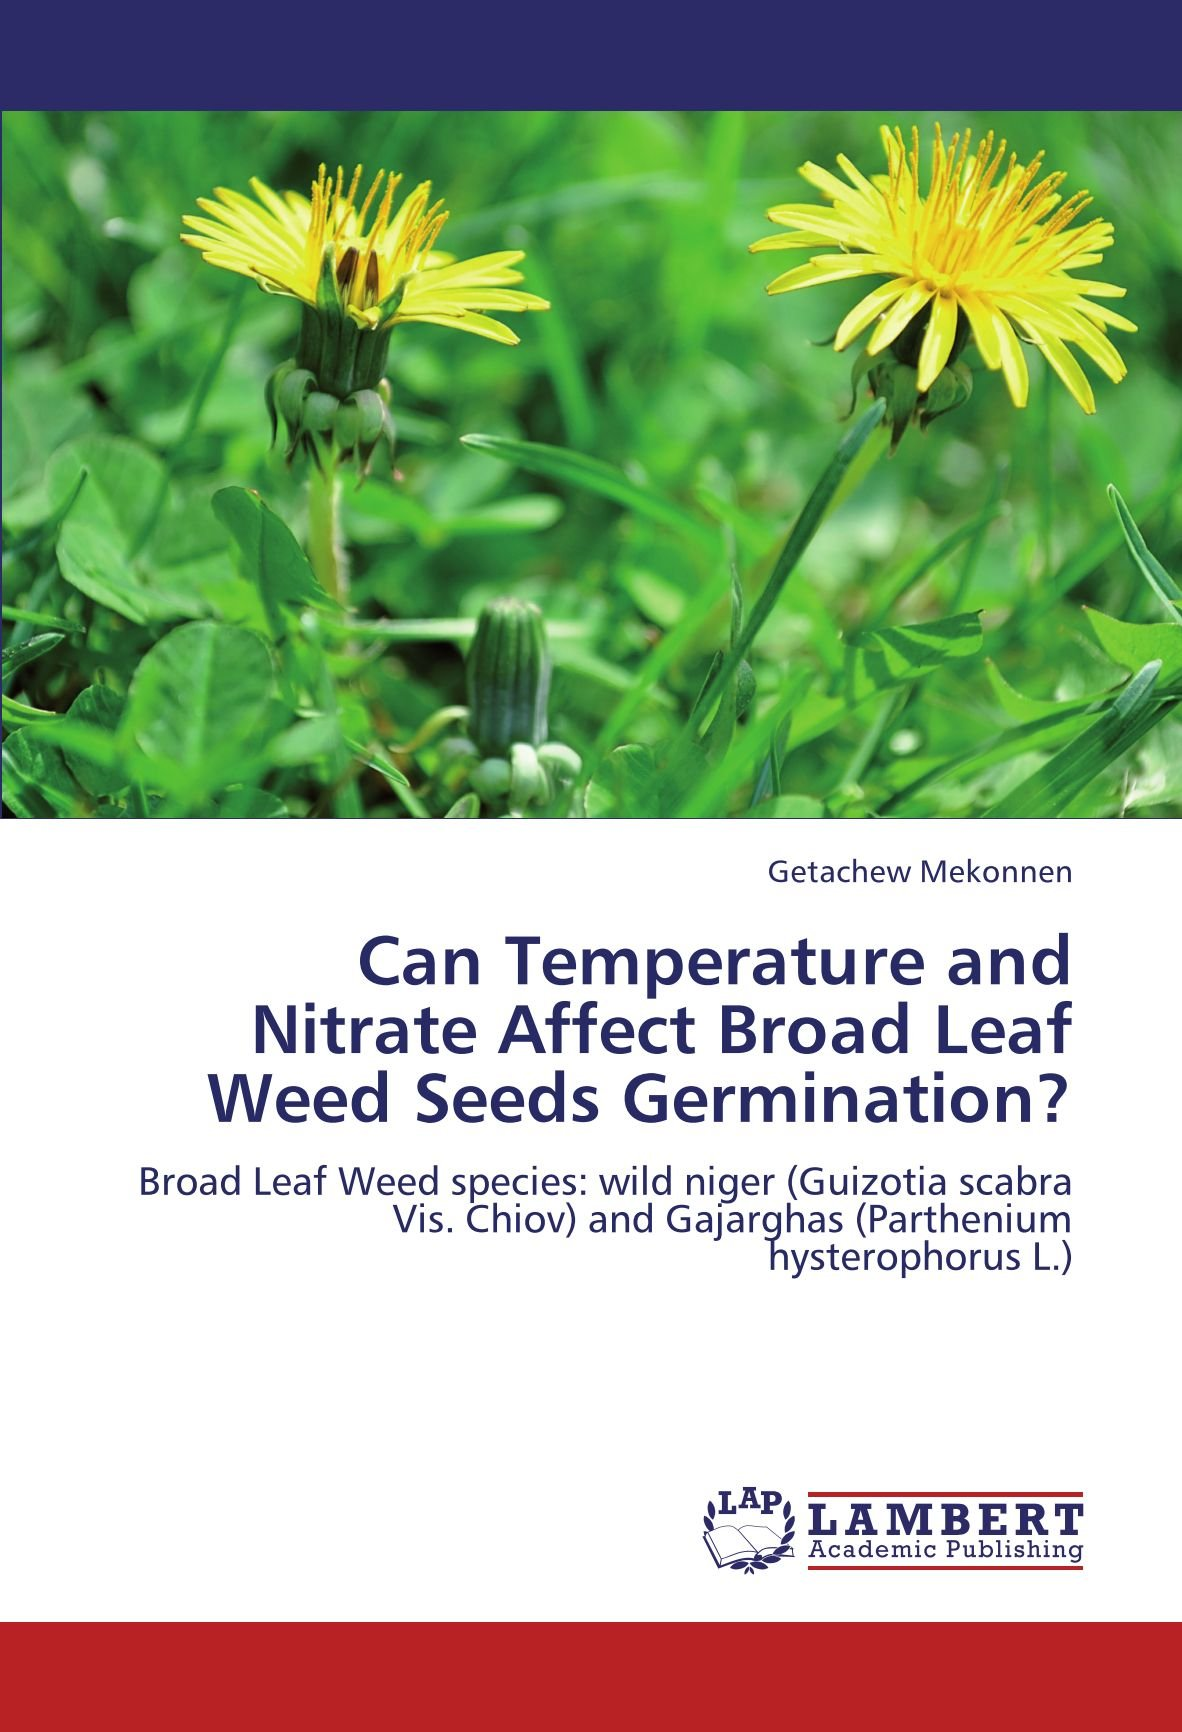 Can Temperature and Nitrate Affect Broad Leaf Weed Seeds Germination?: Broad Leaf Weed species: wild niger (Guizotia scabra Vis. Chiov) and Gajarghas (Parthenium hysterophorus L.) PDF